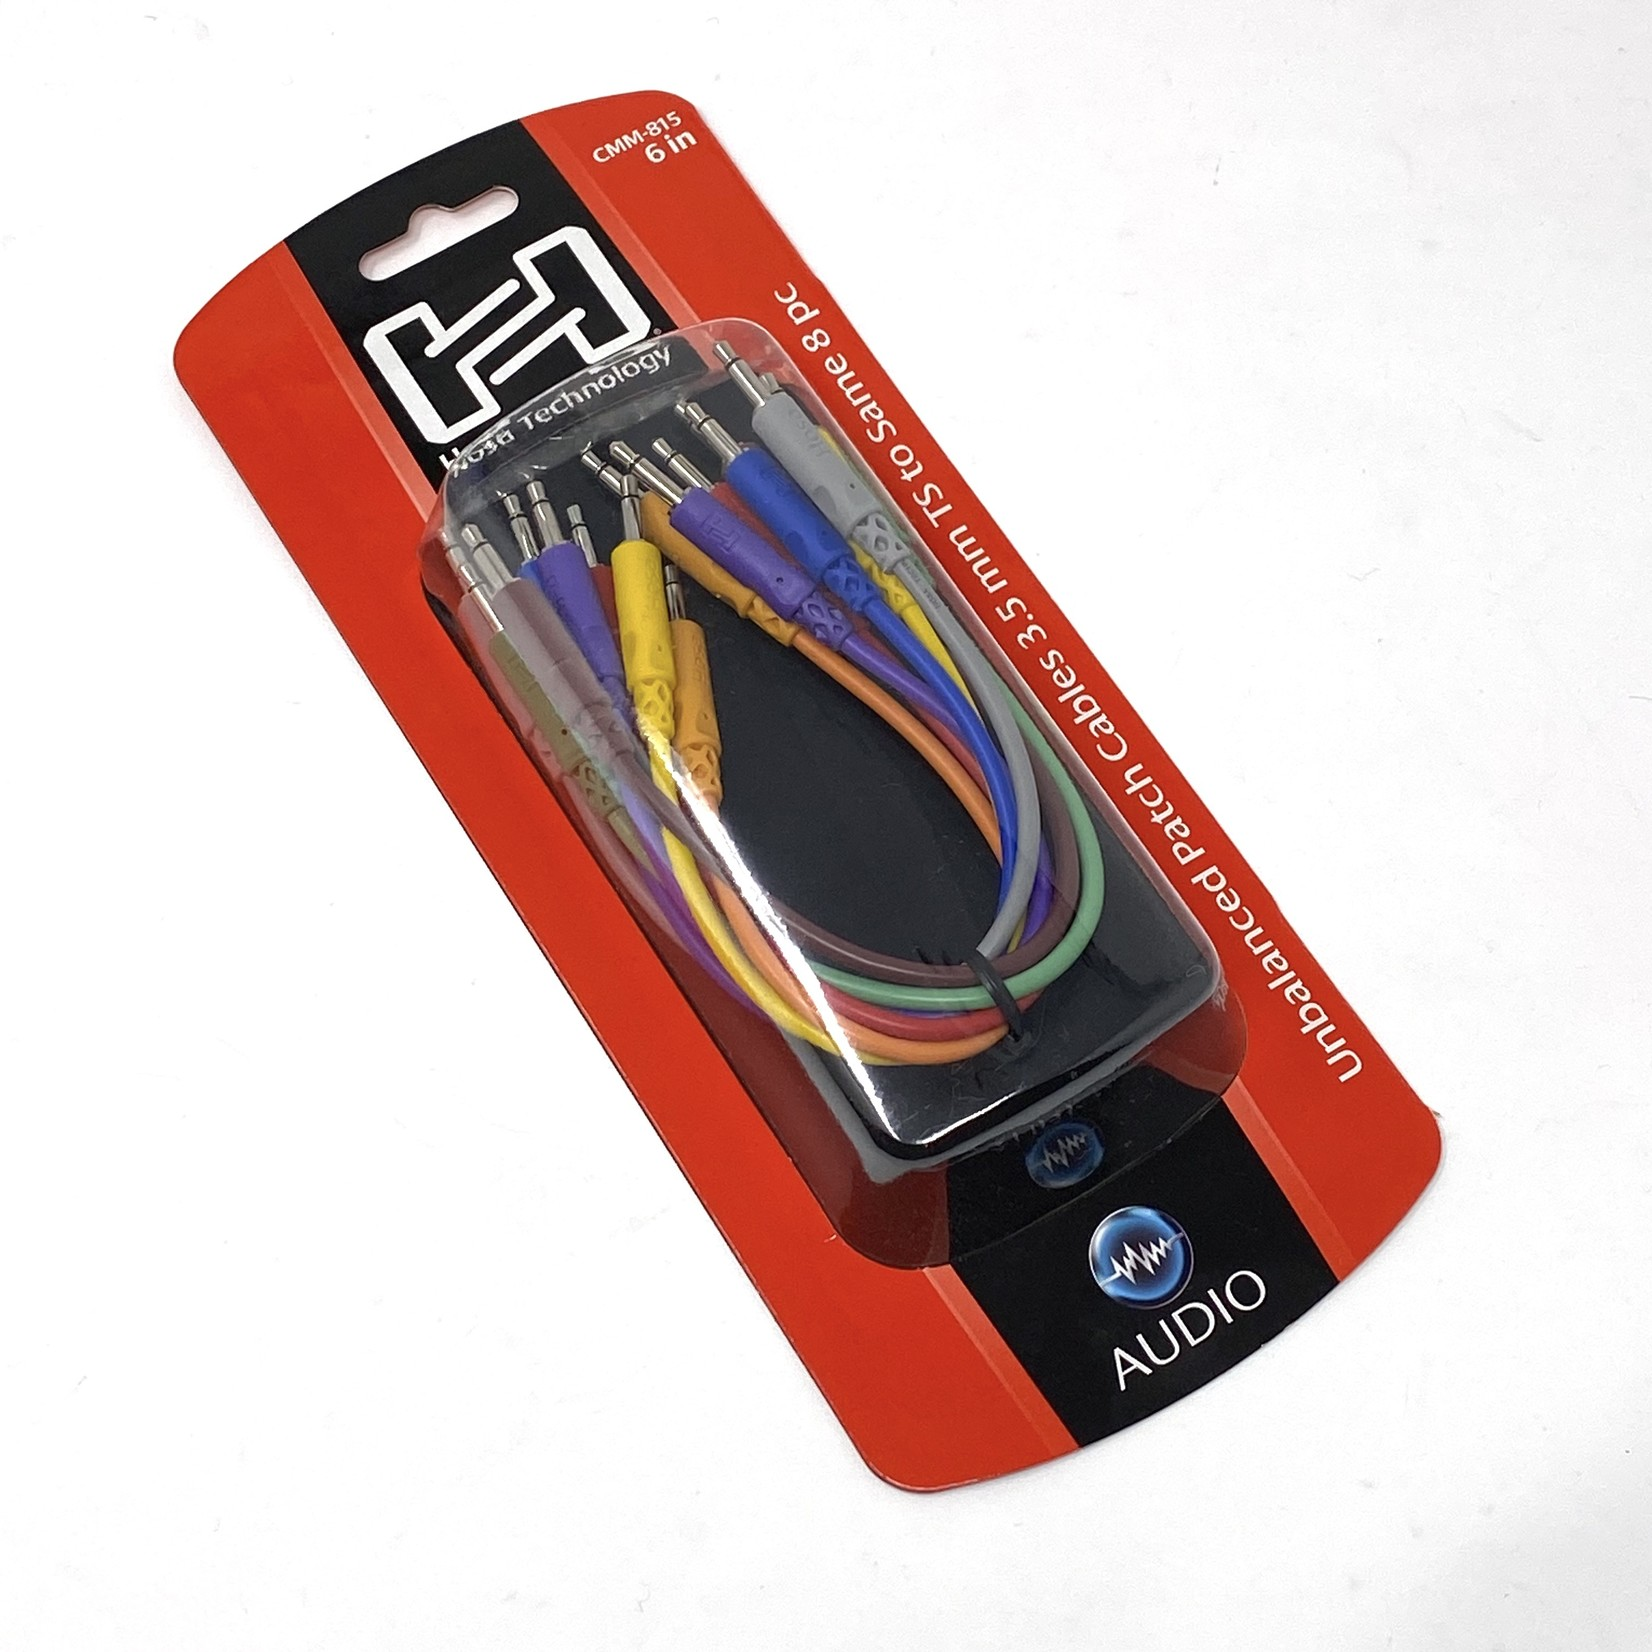 Hosa Hosa CMM-815, 3.5mm TS (unbalanced/mono) Eurorack Patch Cables 8-pack - 6-inch (Assorted Colors)